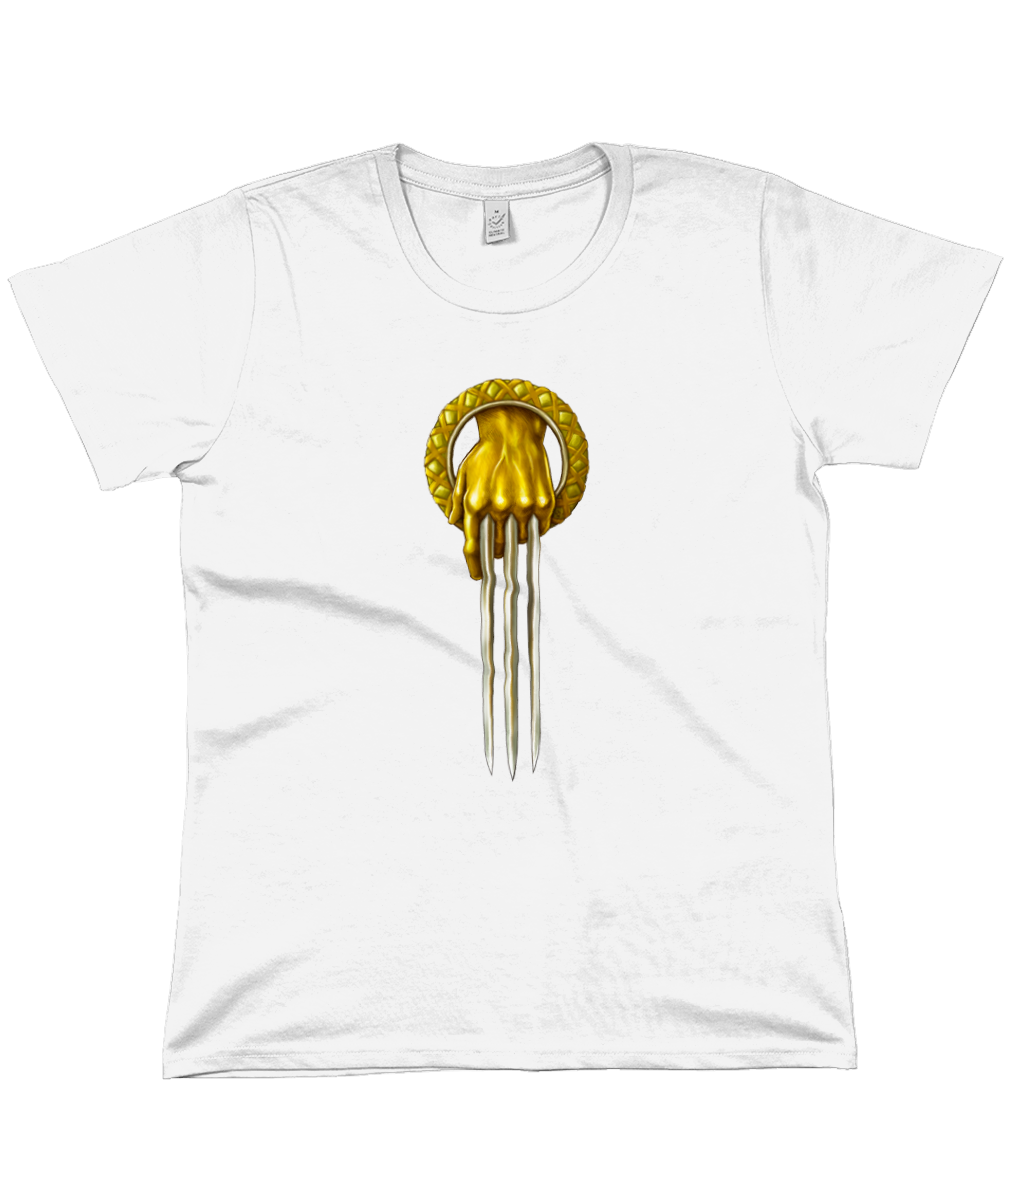 game of thrones hand of the king graphic tee